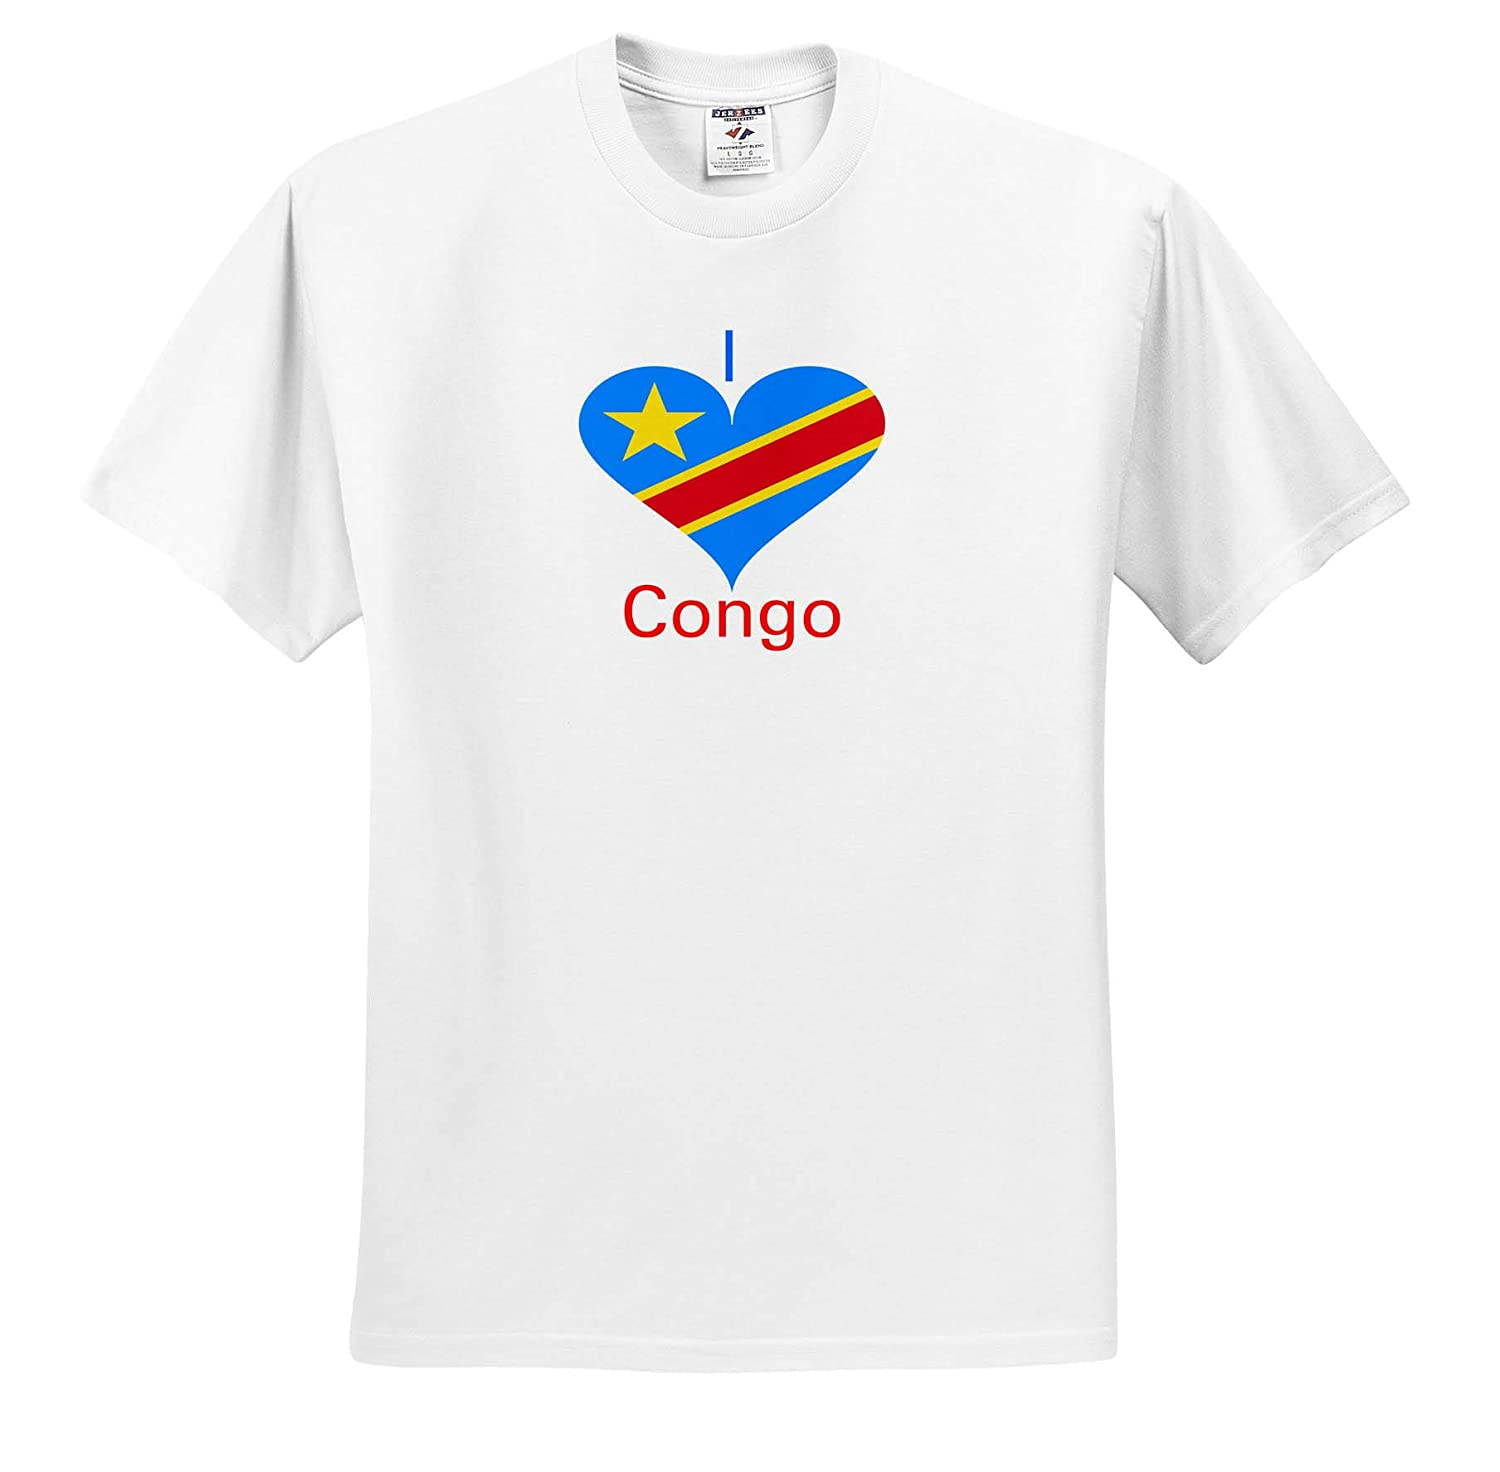 Coat of Arms in Heart T-Shirts Image of Congo Africa Coat of Arms in Heart 3dRose Lens Art by Florene